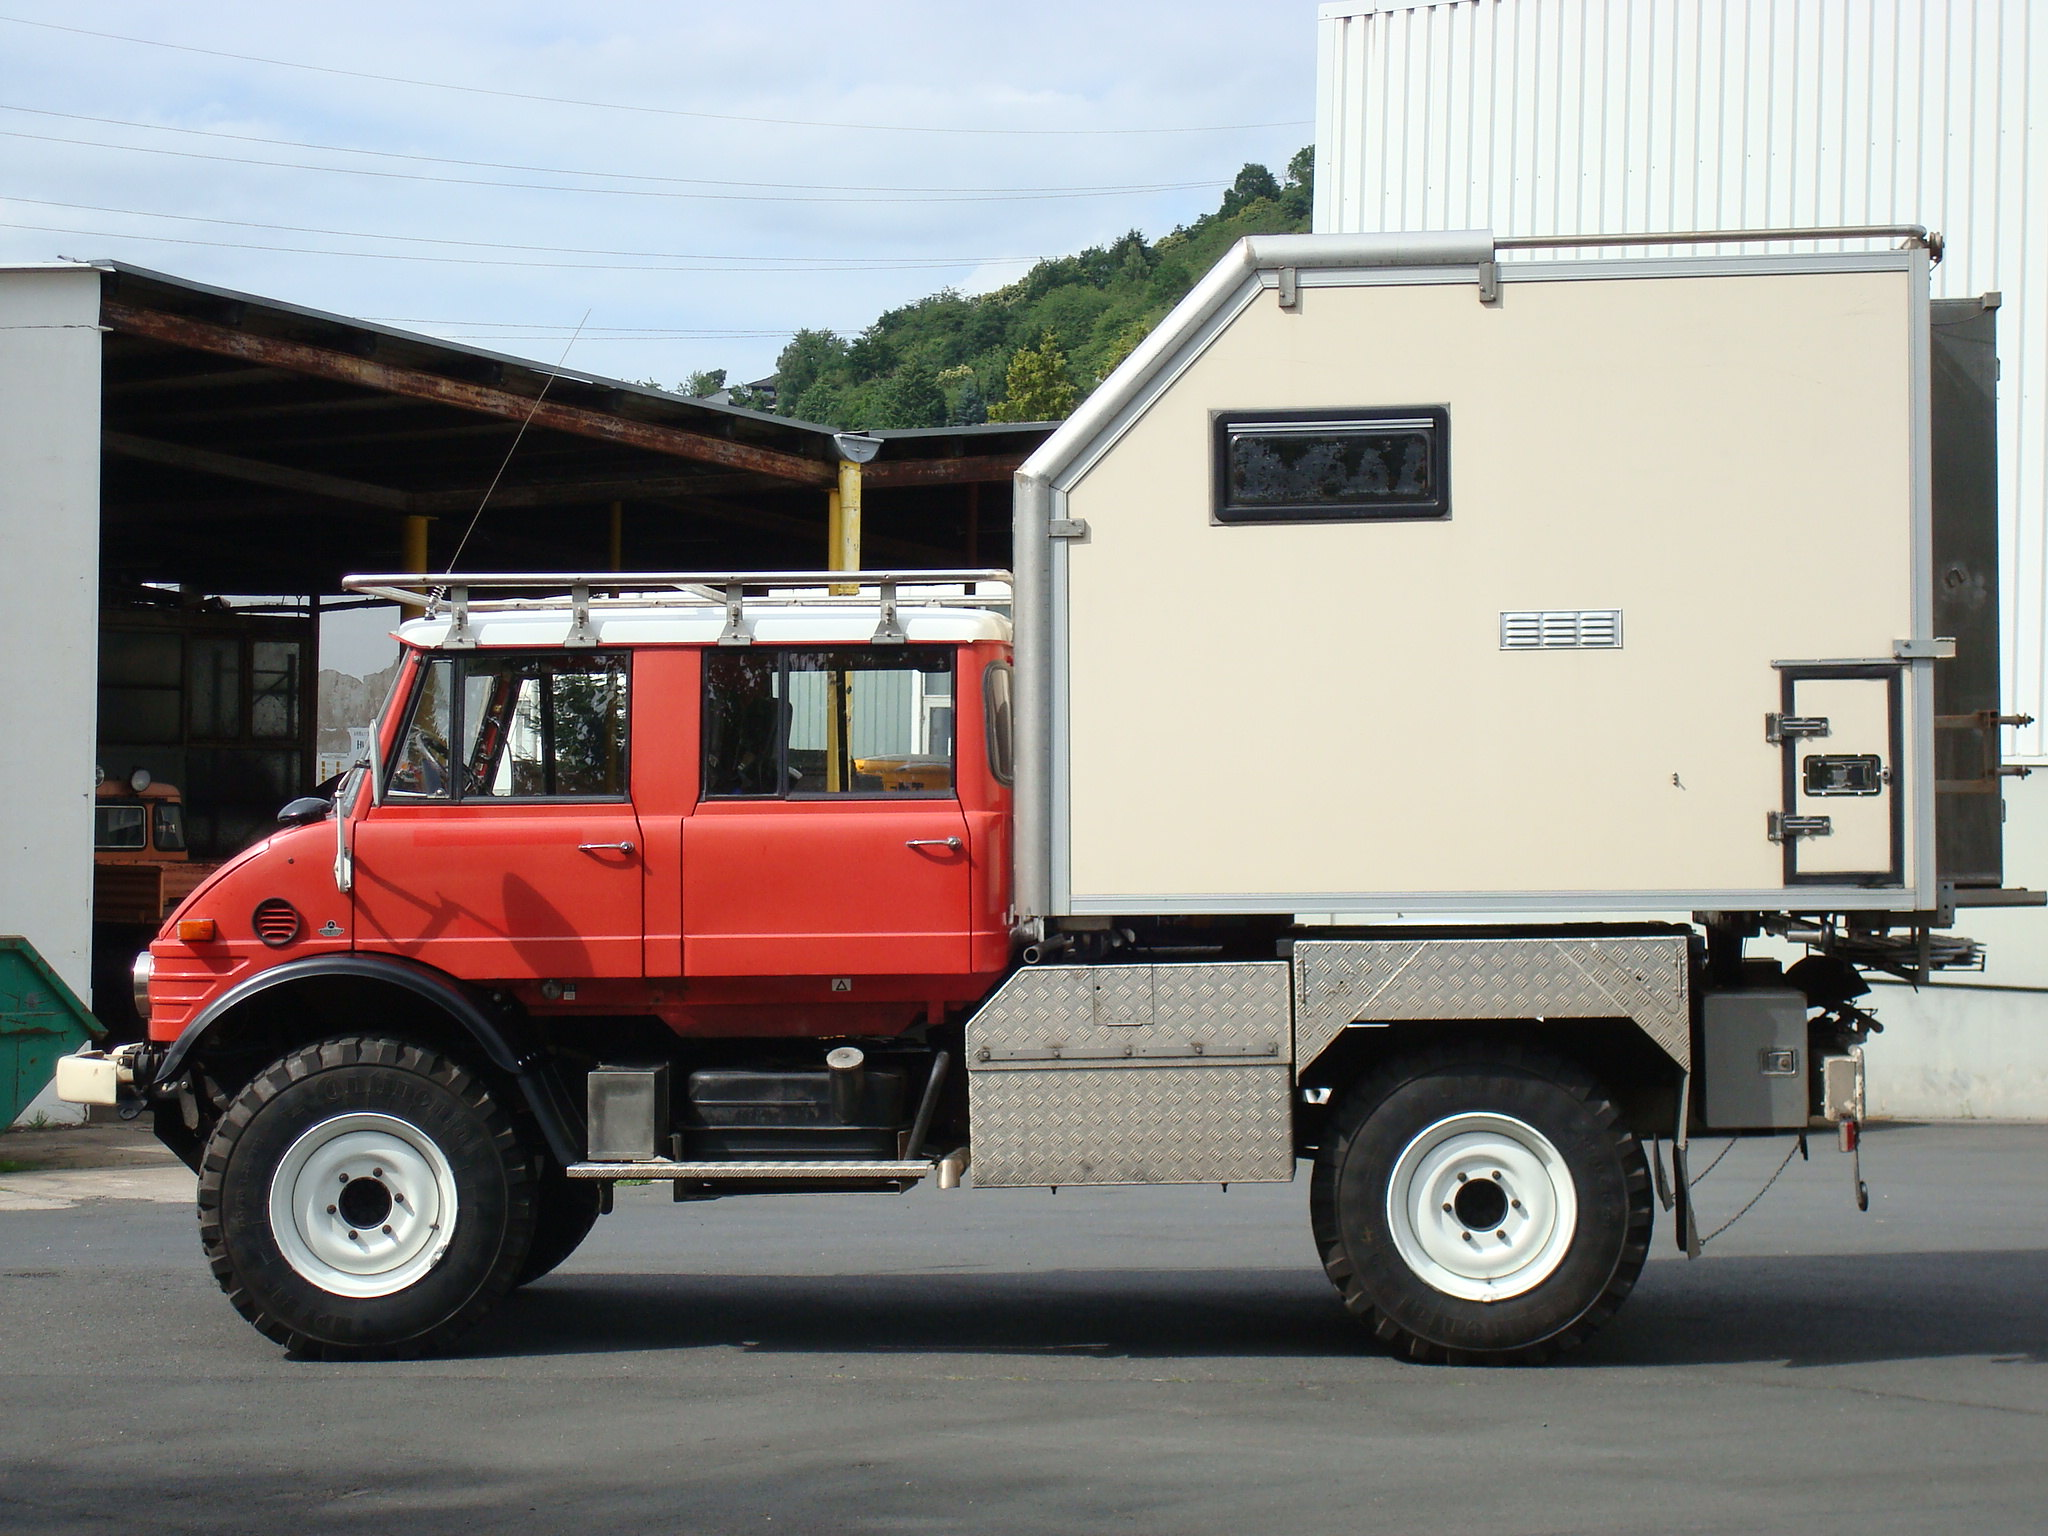 Rv Mercedes >> Unimog Campers on Pinterest | Mercedes Benz Unimog, Campers and Expedition Vehicle